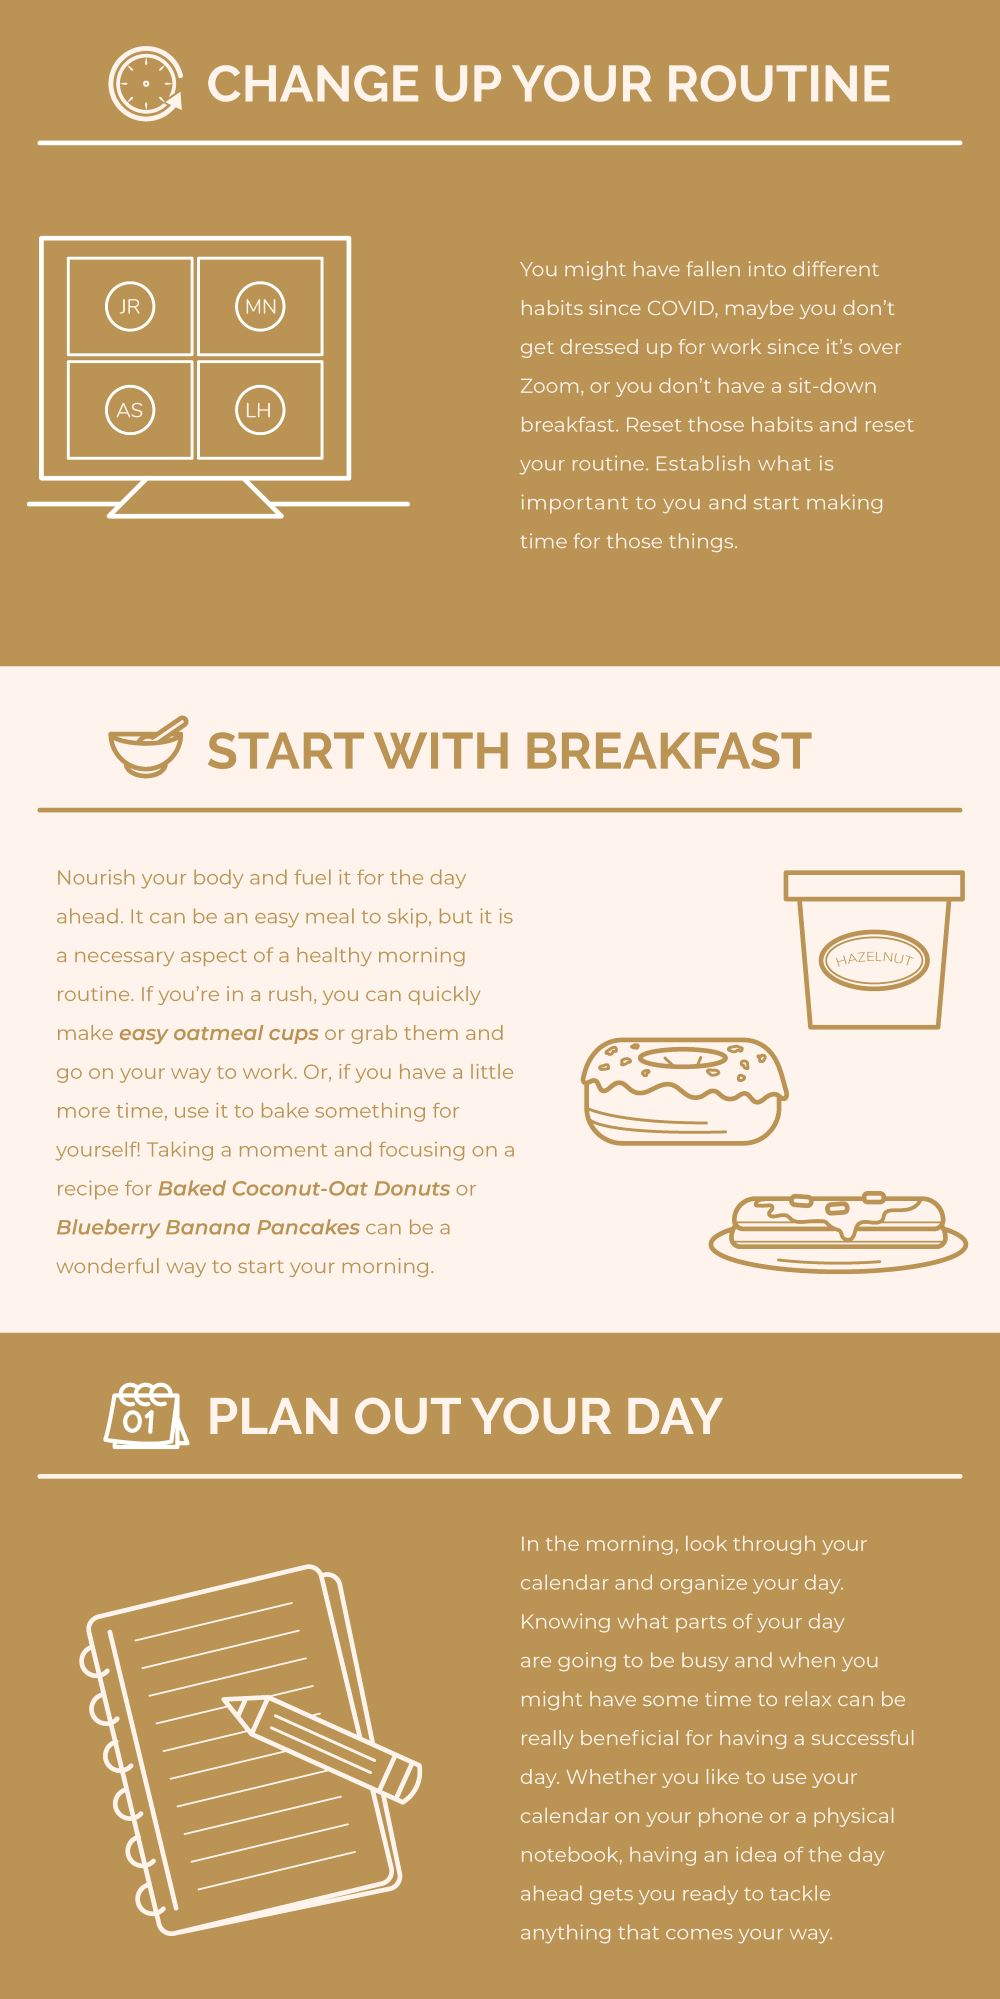 Change Your Morning Routine With Breakfast - Mylk Labs